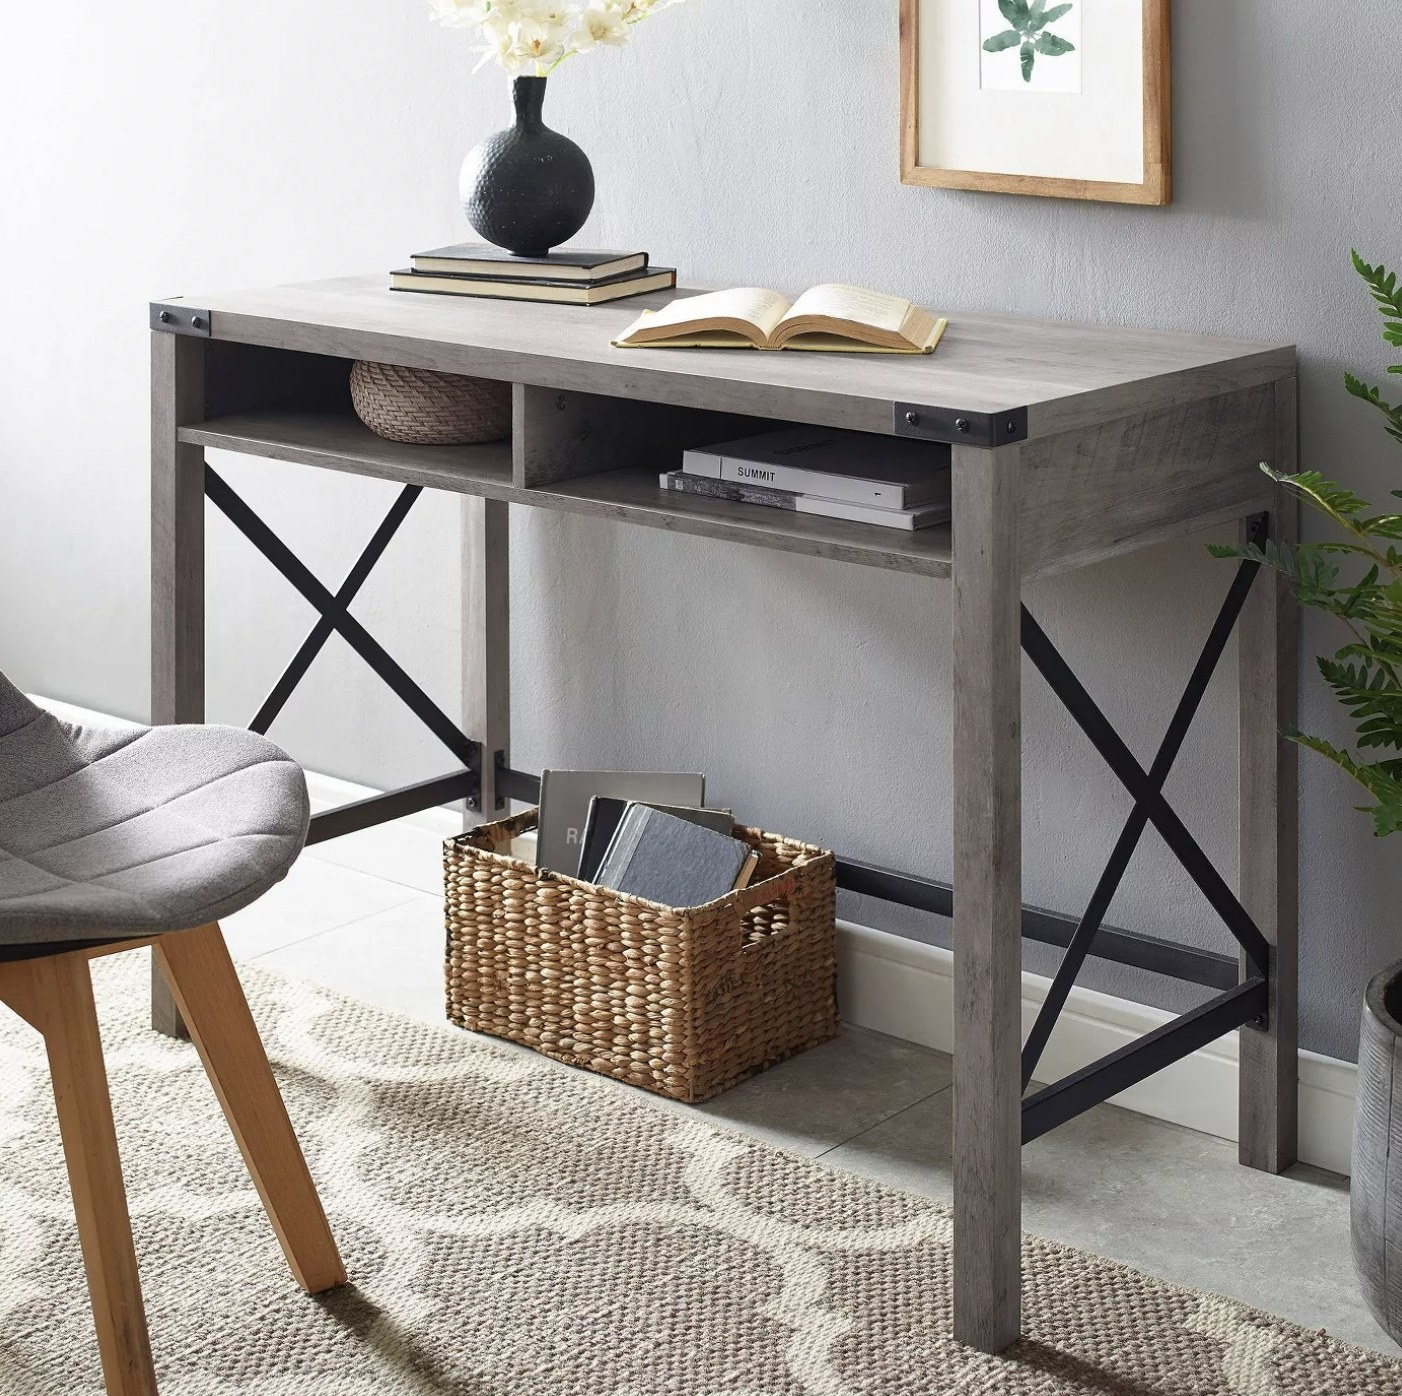 A gray wash writing desk in a living space